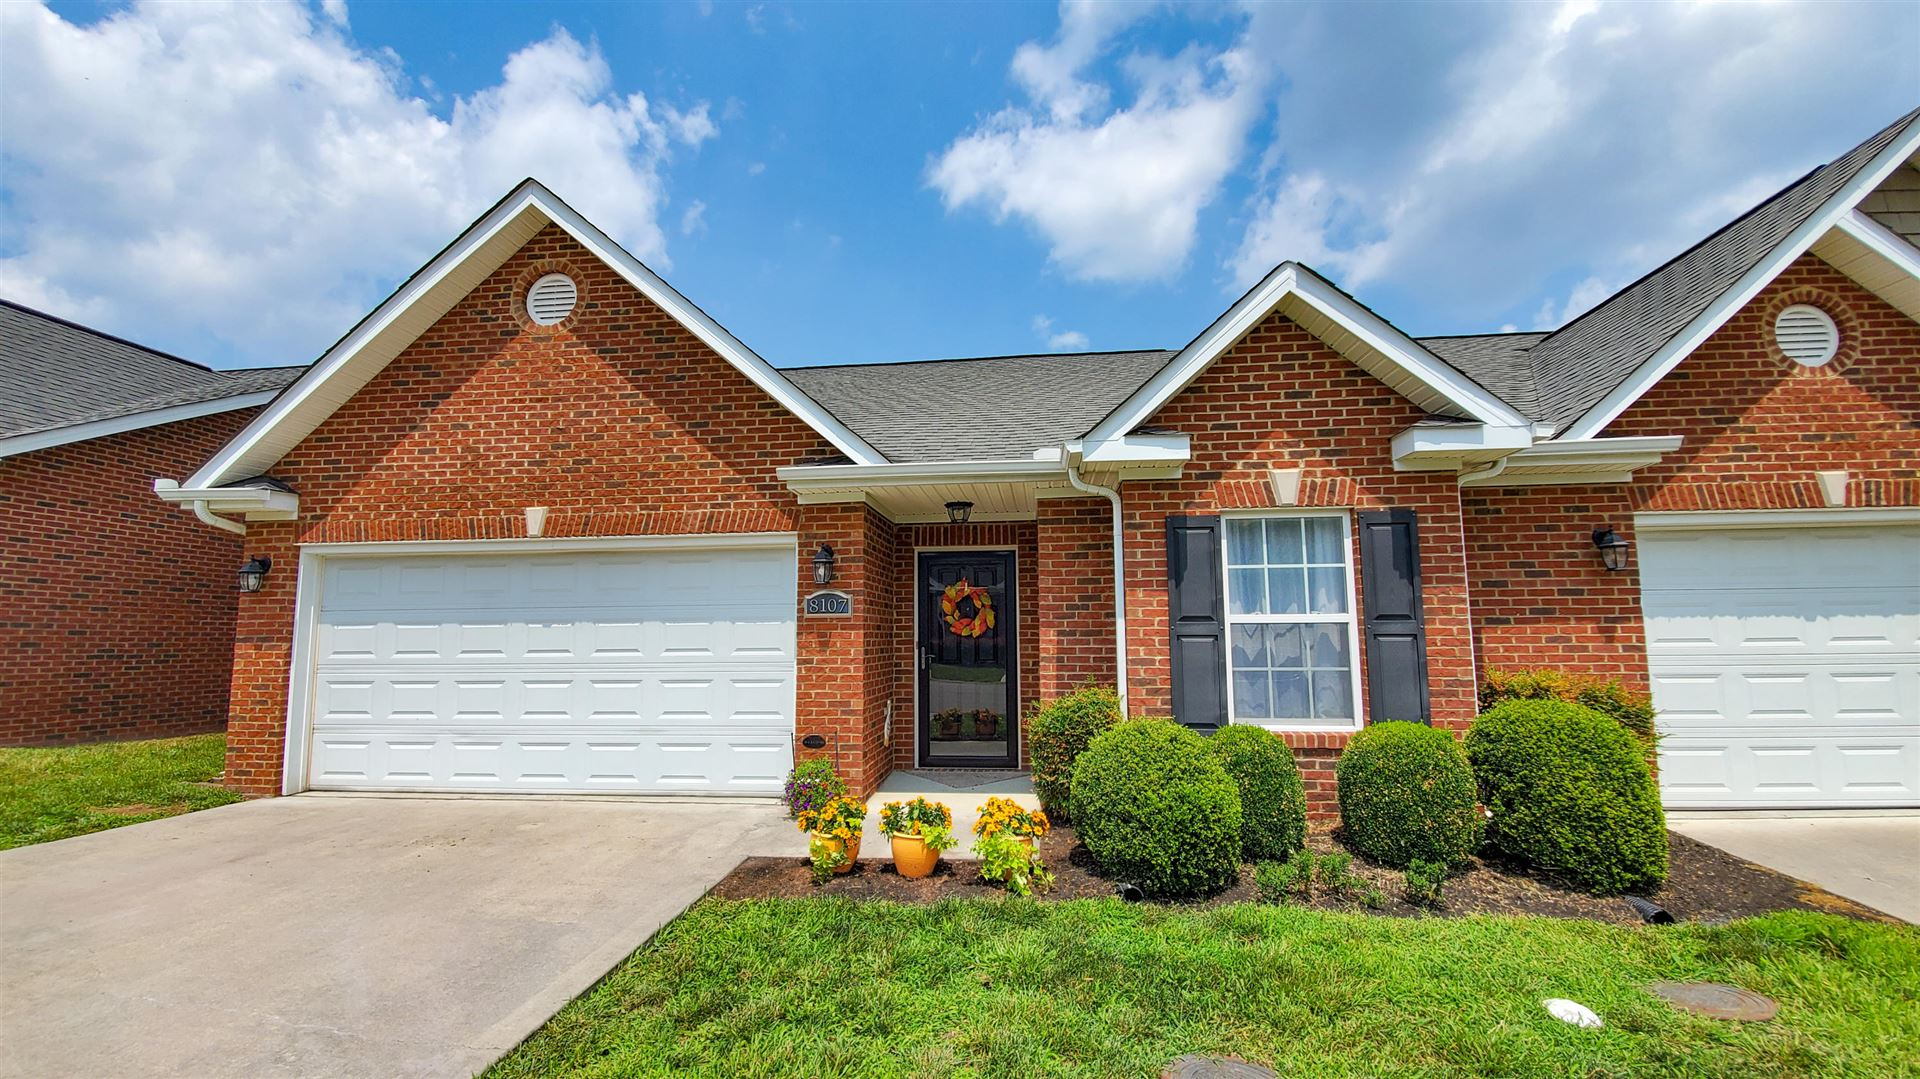 Photo of 8107 Spice Tree Way, Knoxville, TN 37931 (MLS # 1161436)